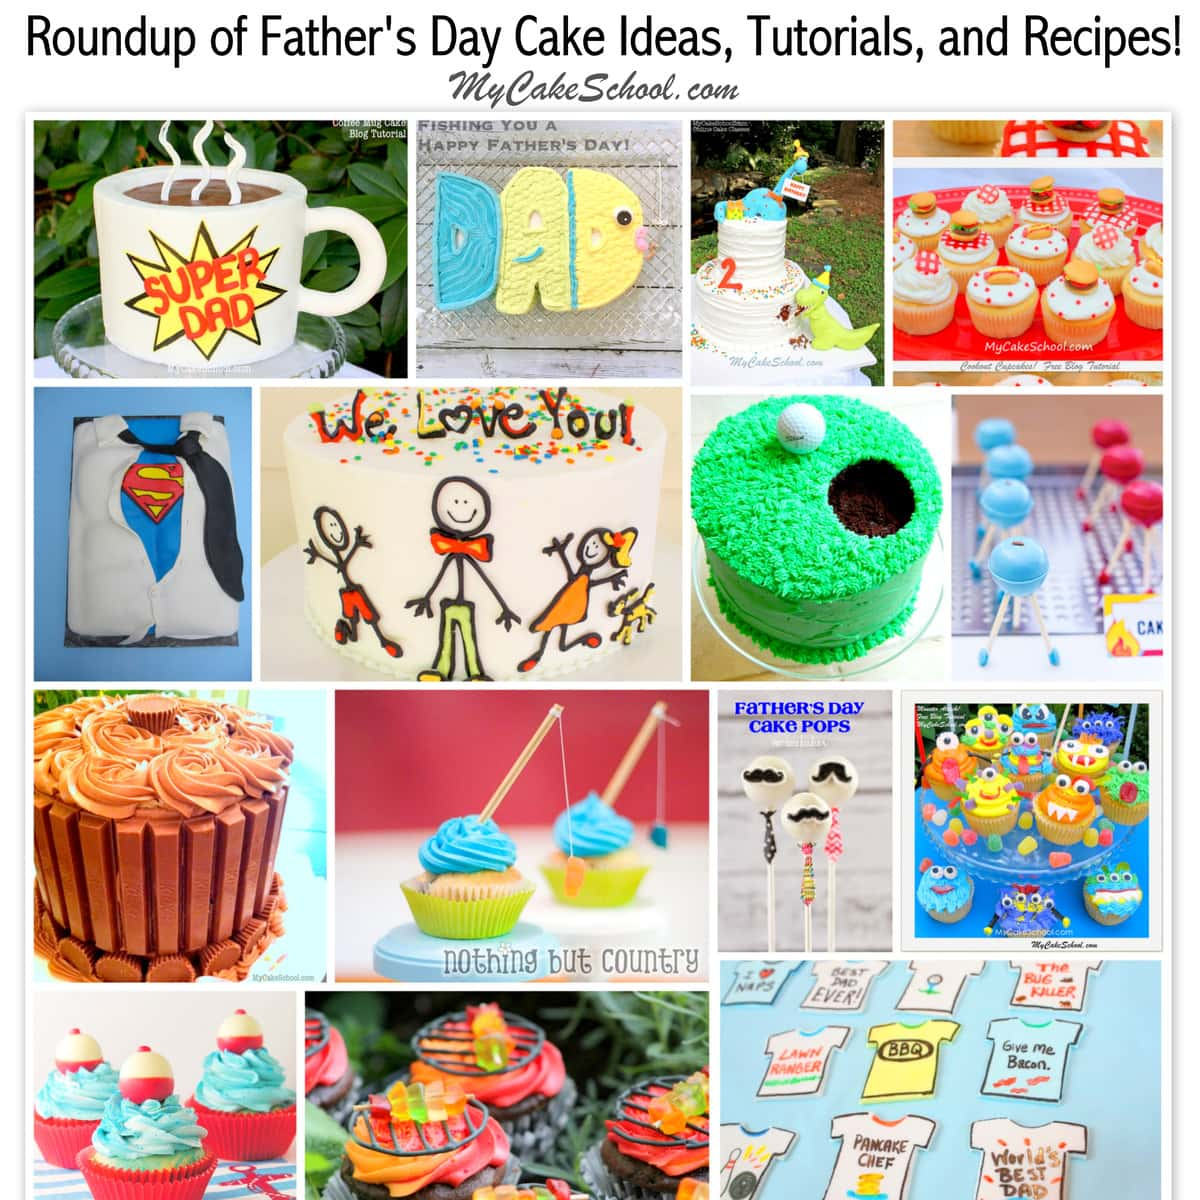 My Cake School's roundup of the BEST Father's Day Cakes, Cupcakes, Ideas, and Recipes! These easy Father's Day Cake ideas are perfect for all skill levels!